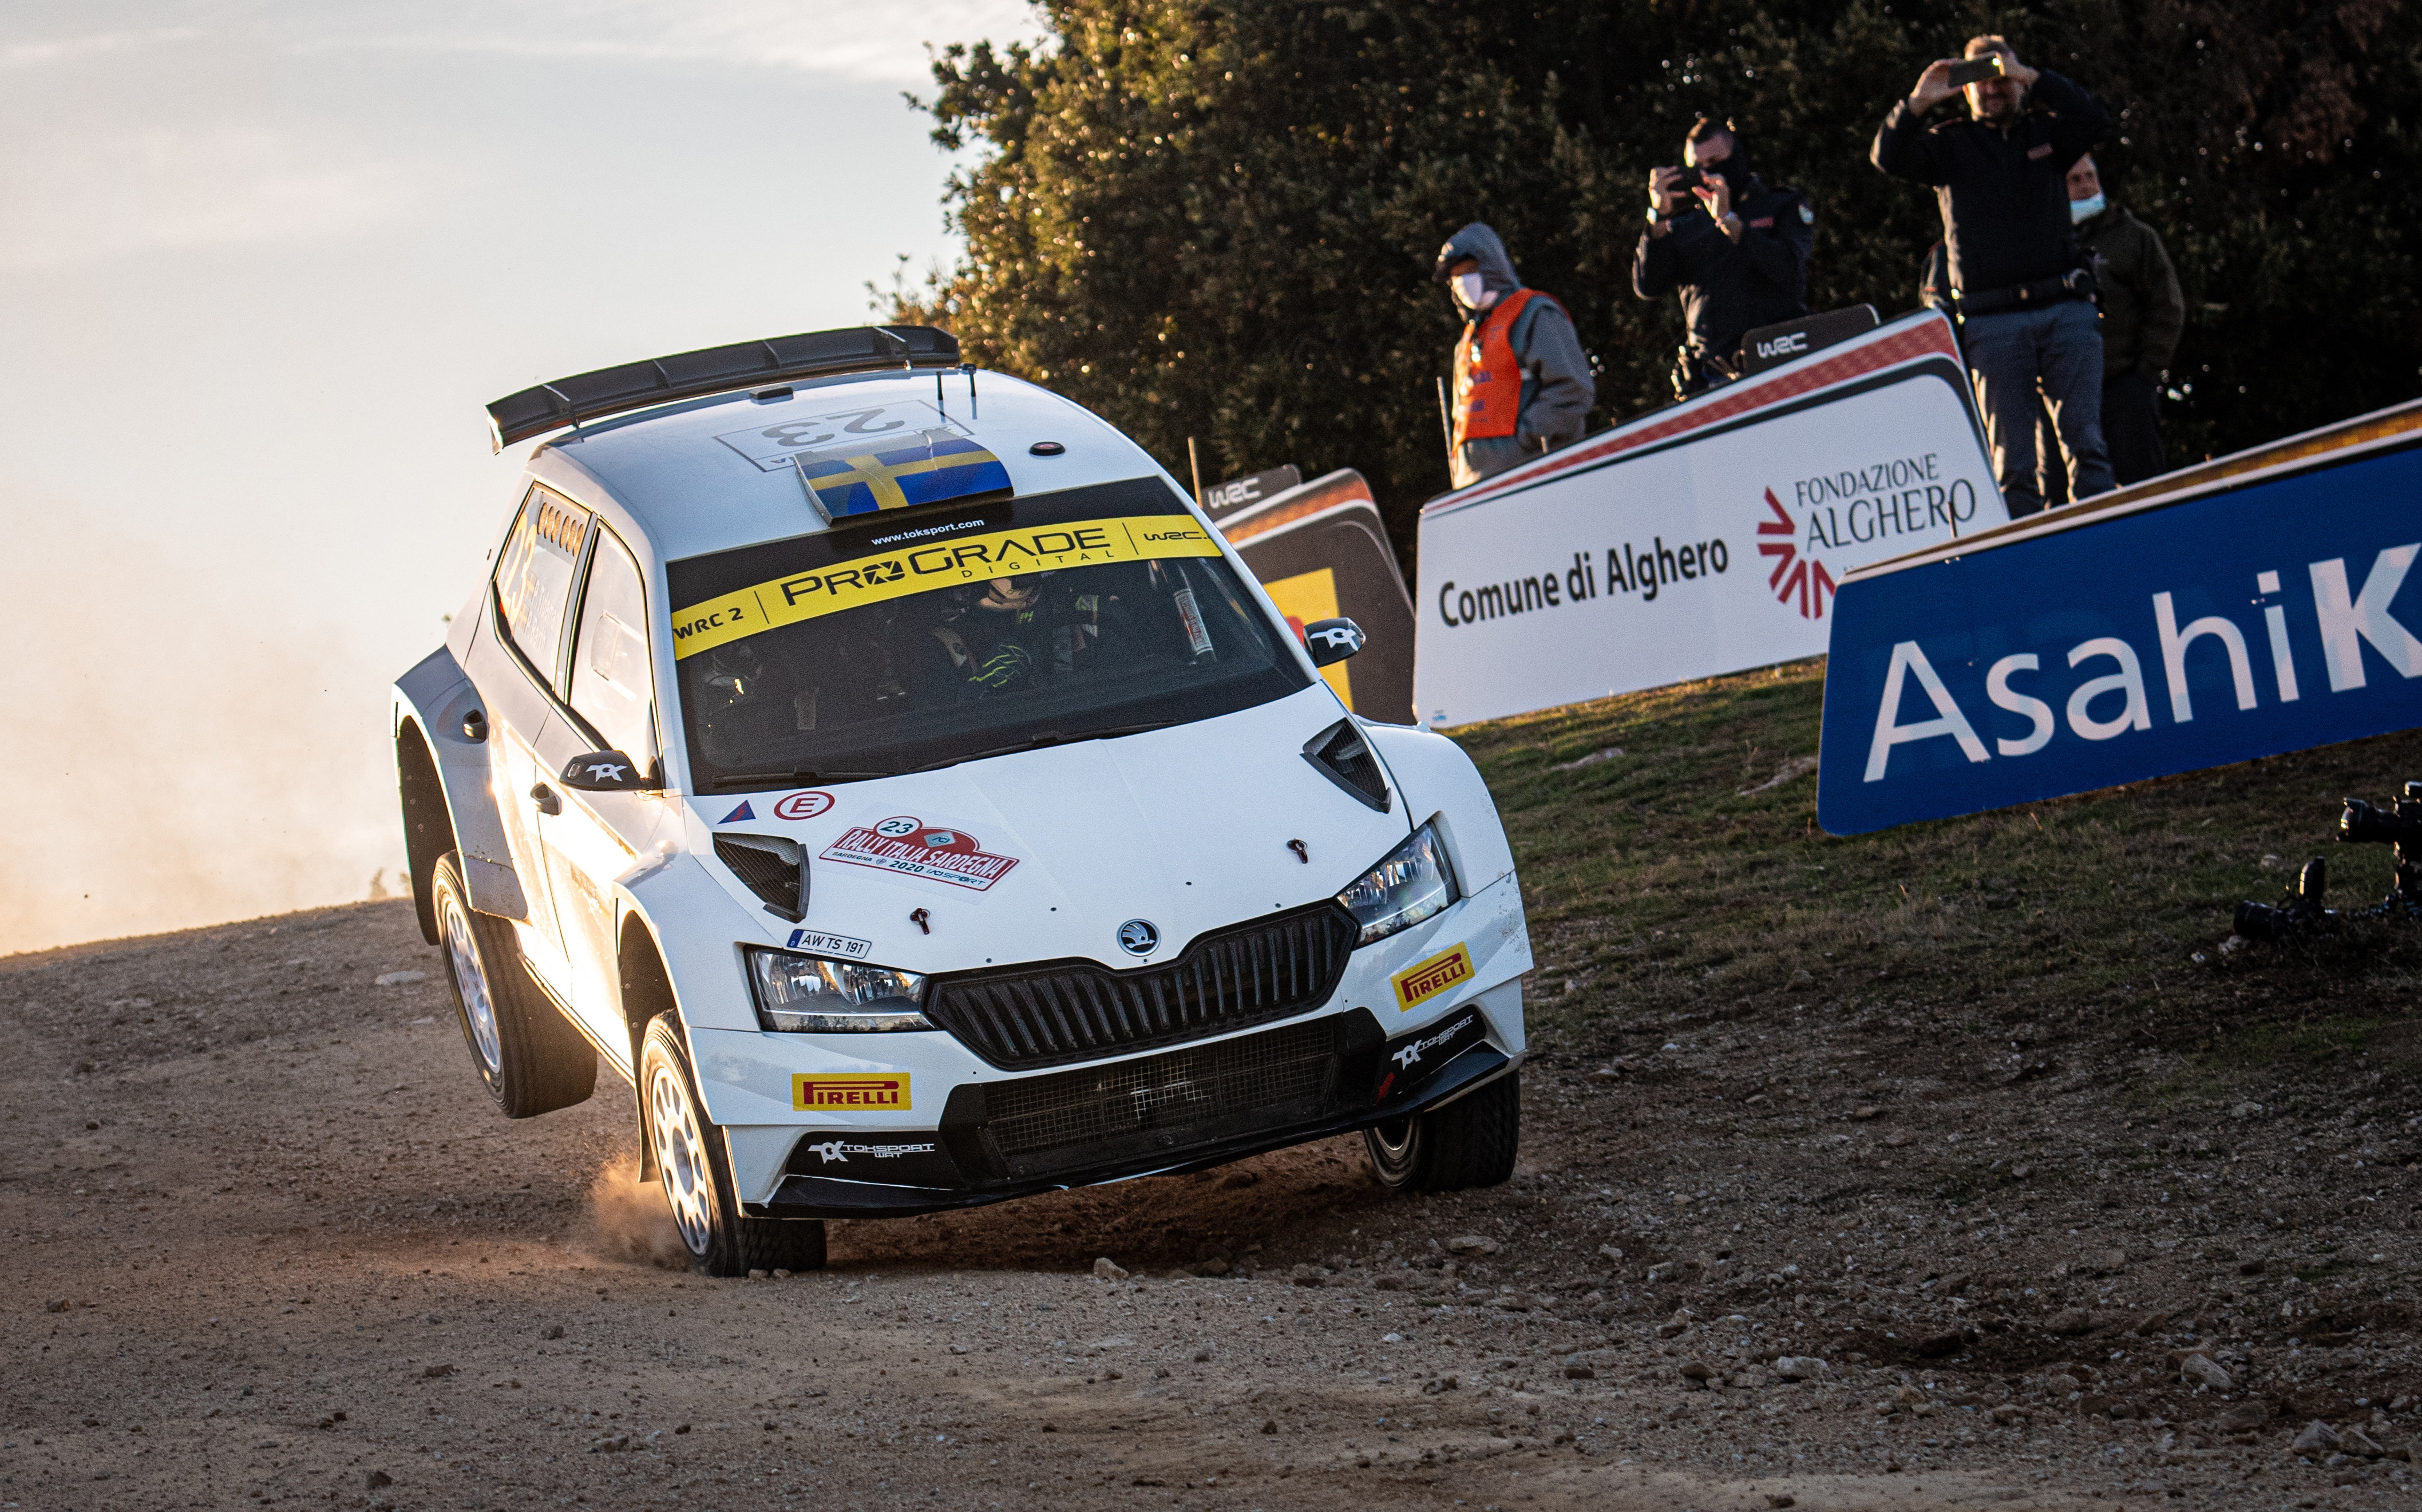 ACI Rally Monza: Final round of the FIA World Rally Championship with strong presence of SKODA crews - Image 4